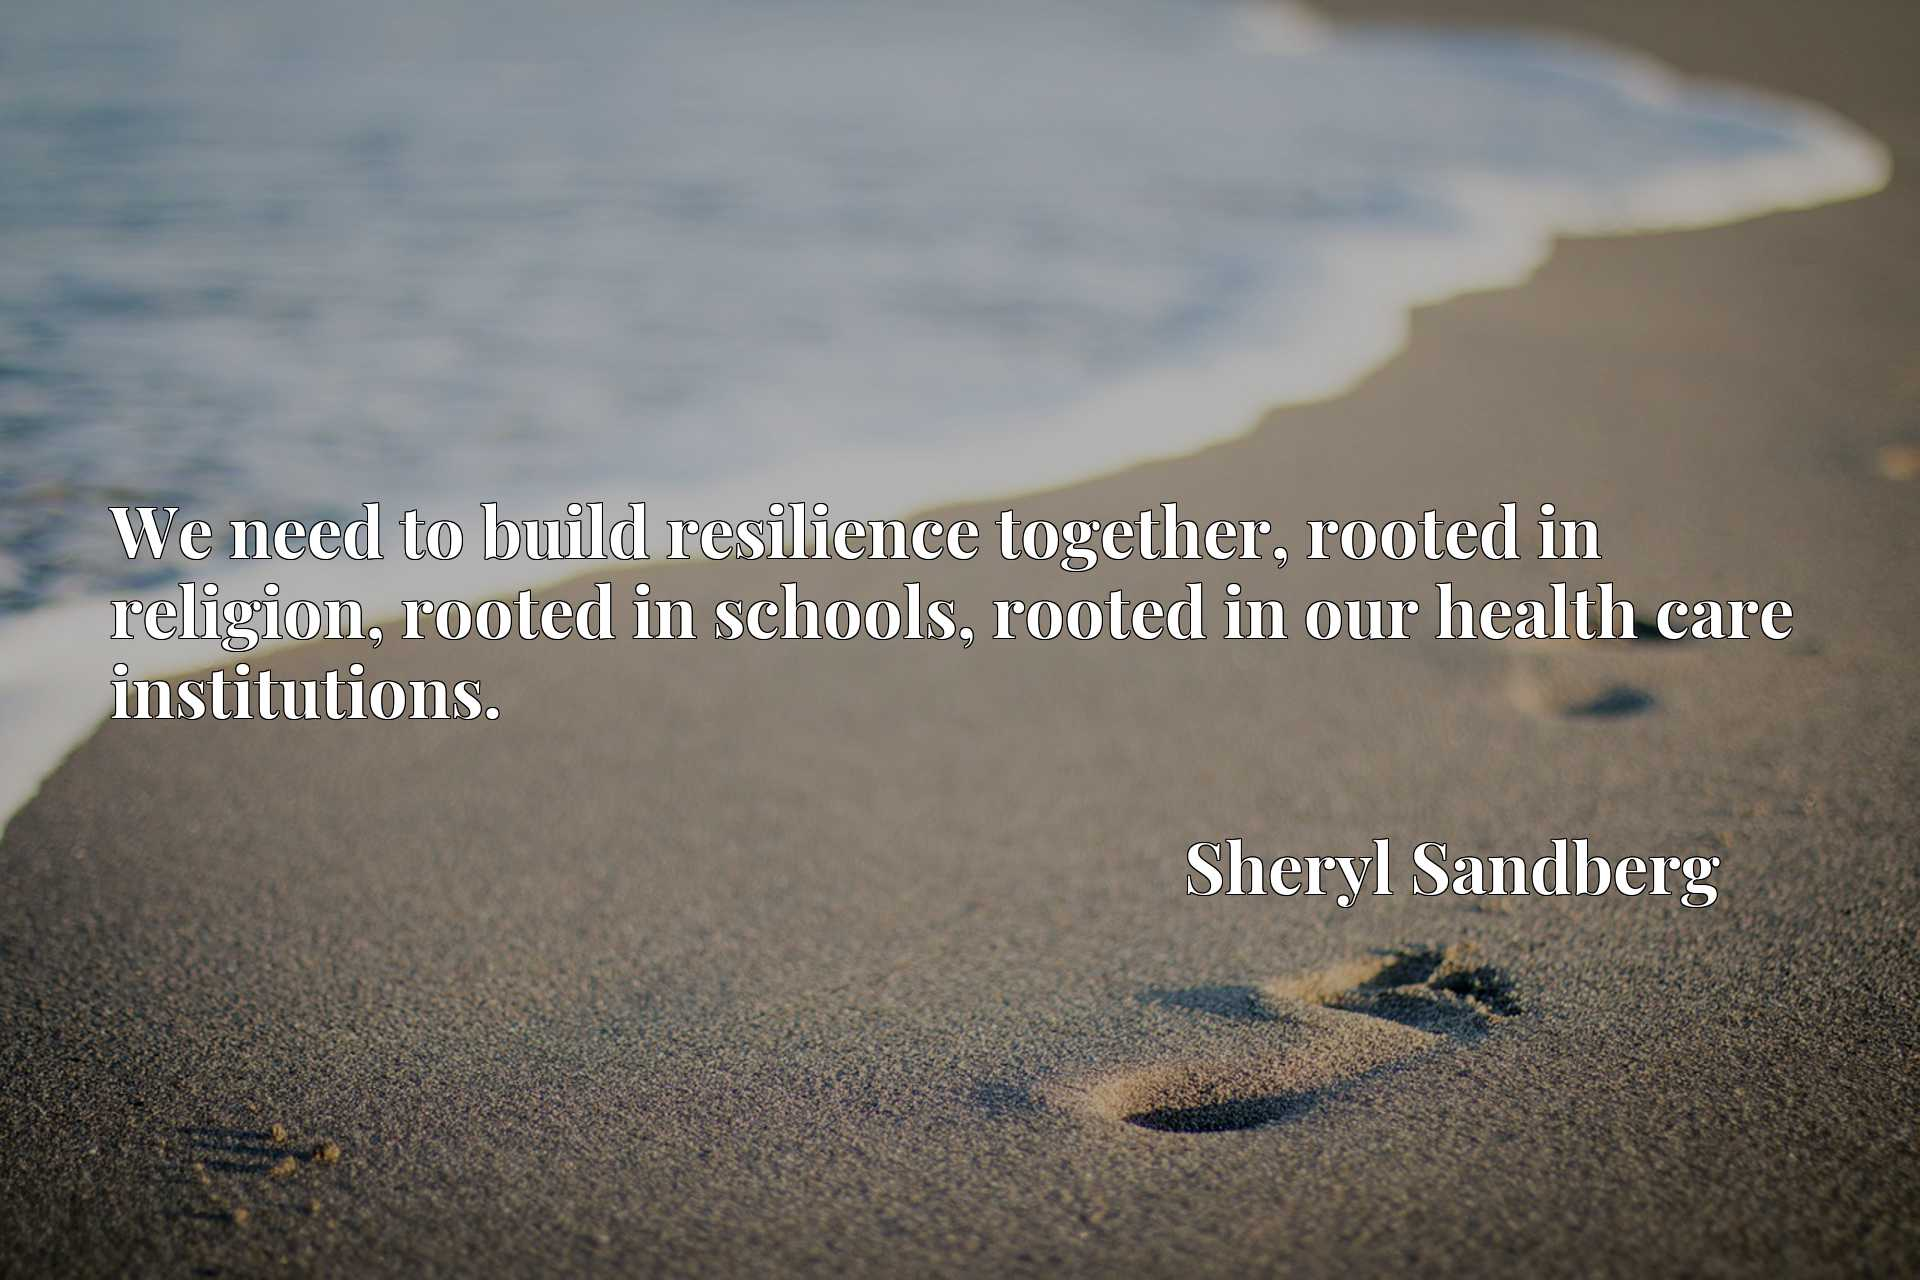 We need to build resilience together, rooted in religion, rooted in schools, rooted in our health care institutions.